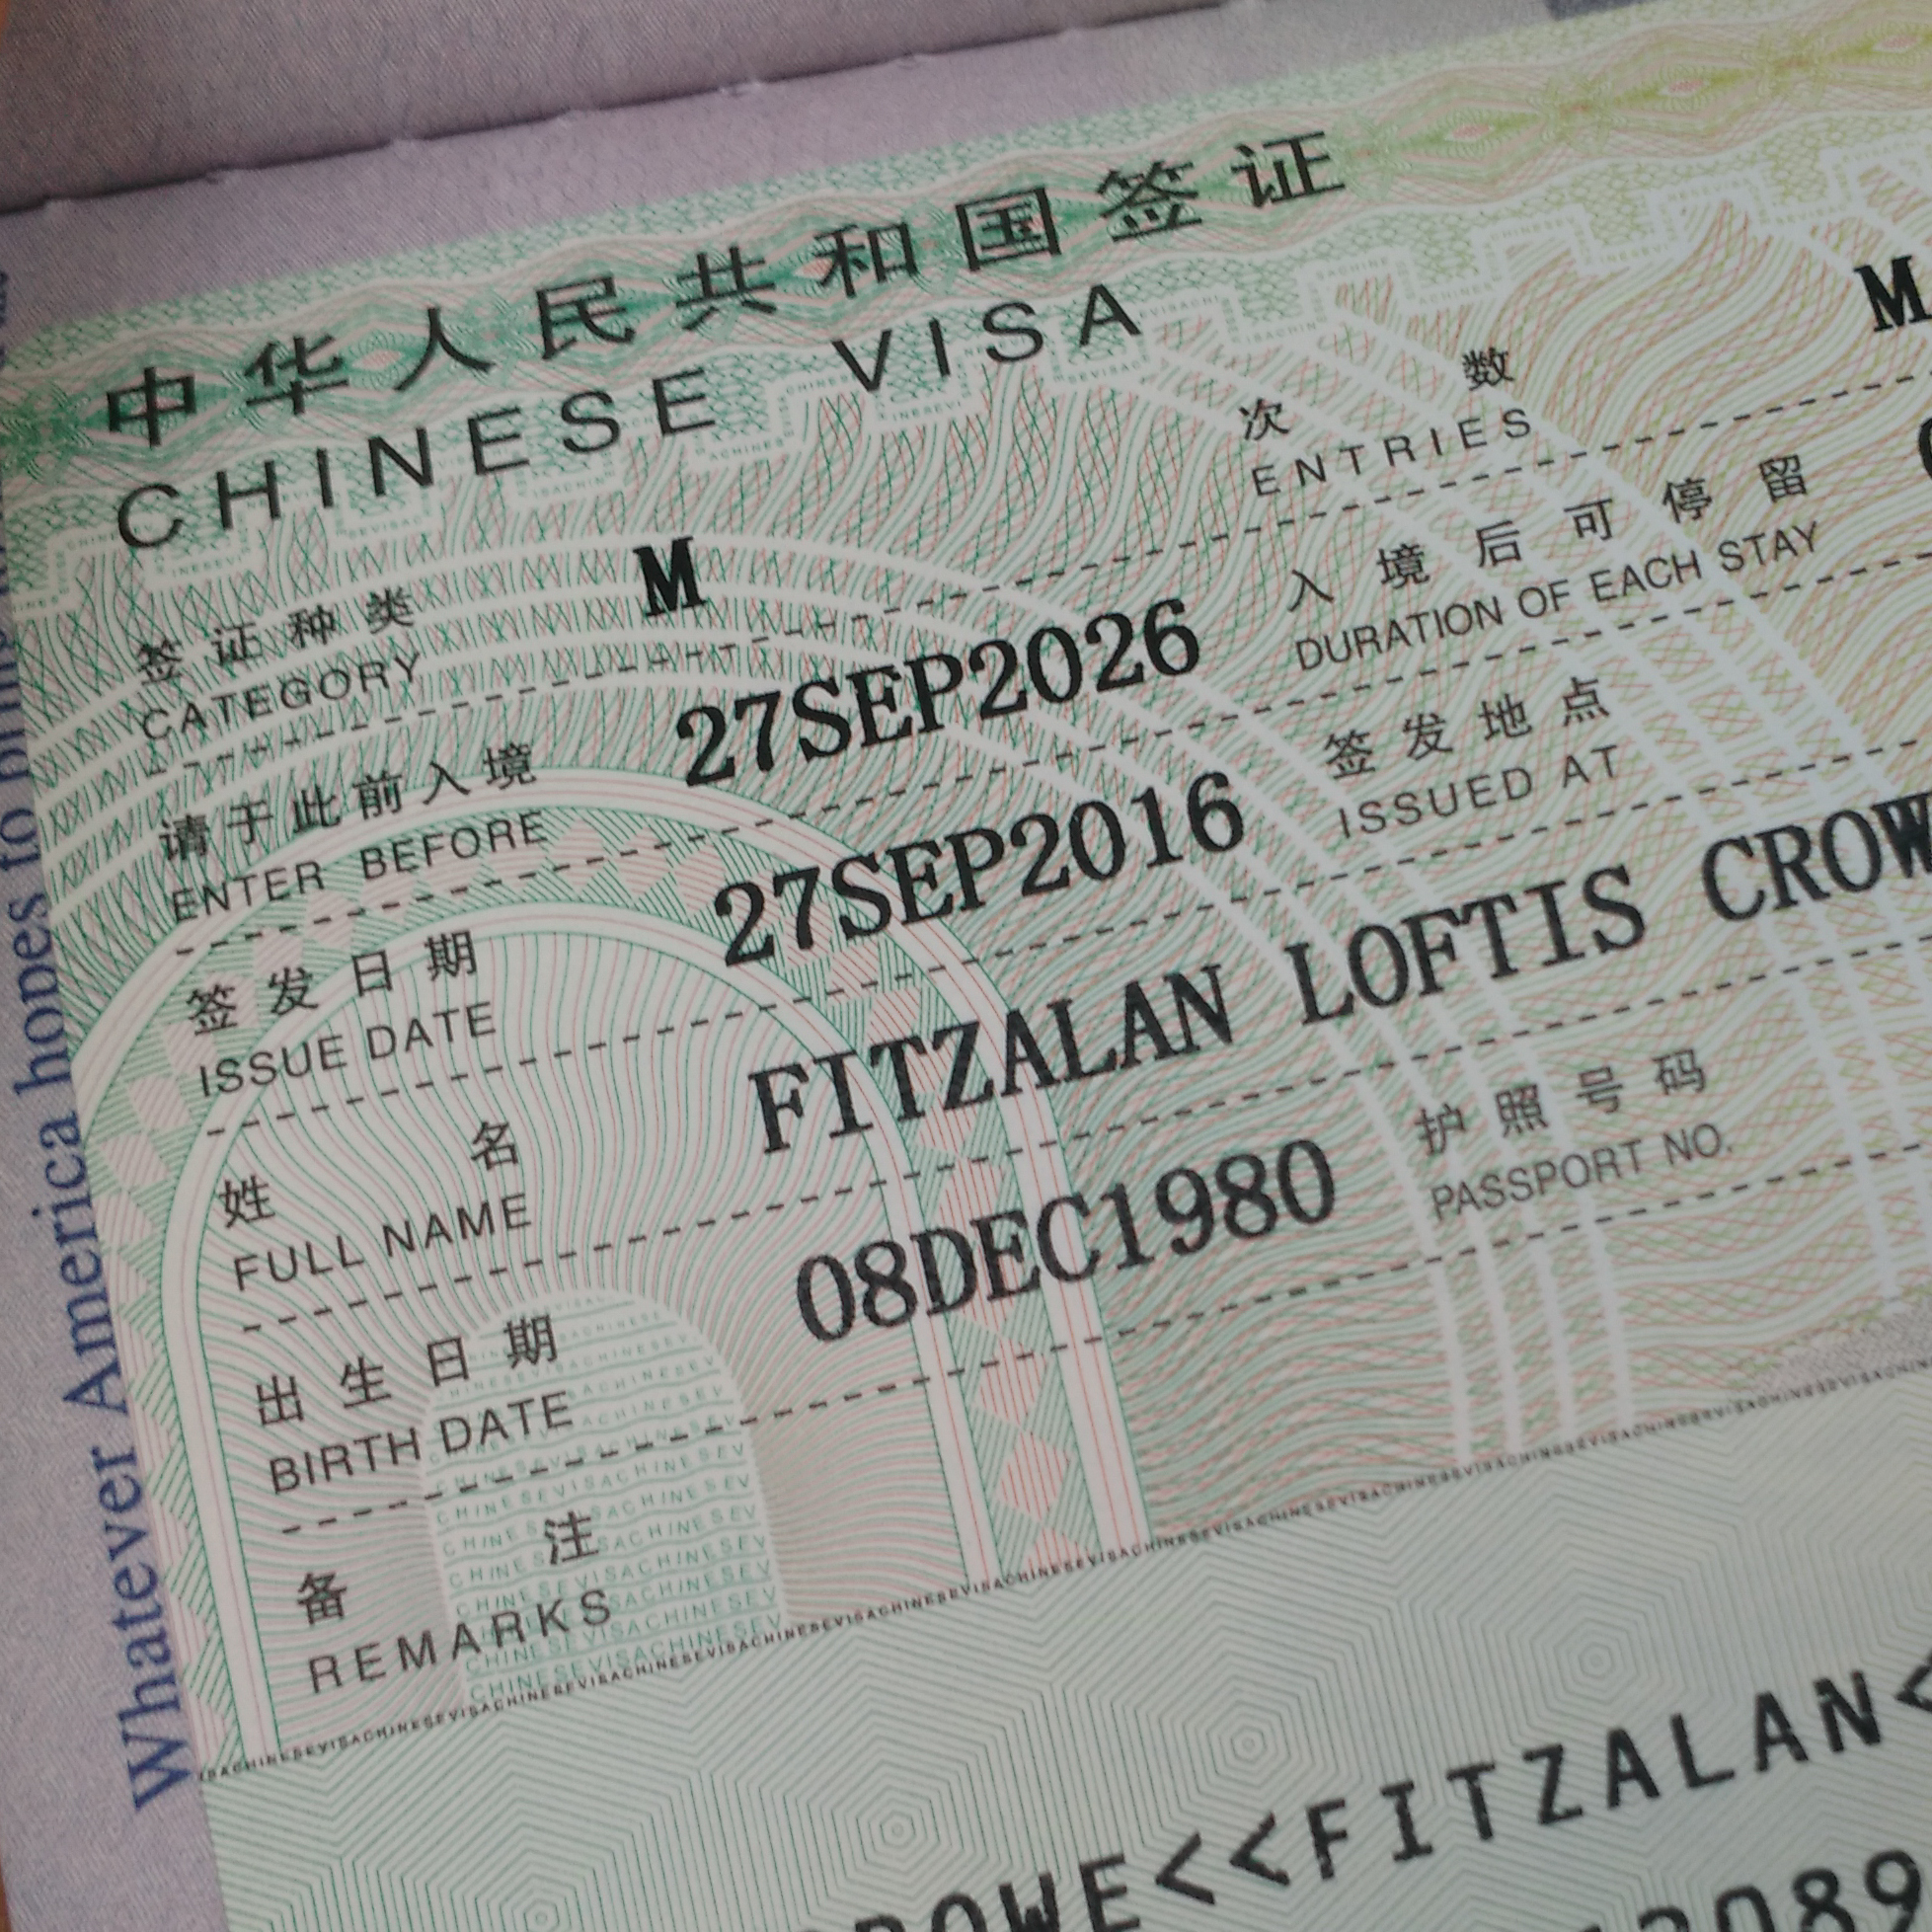 Brussels, expat, expat adventures, work travel, Chinese visa, Chinese embassy, work visa